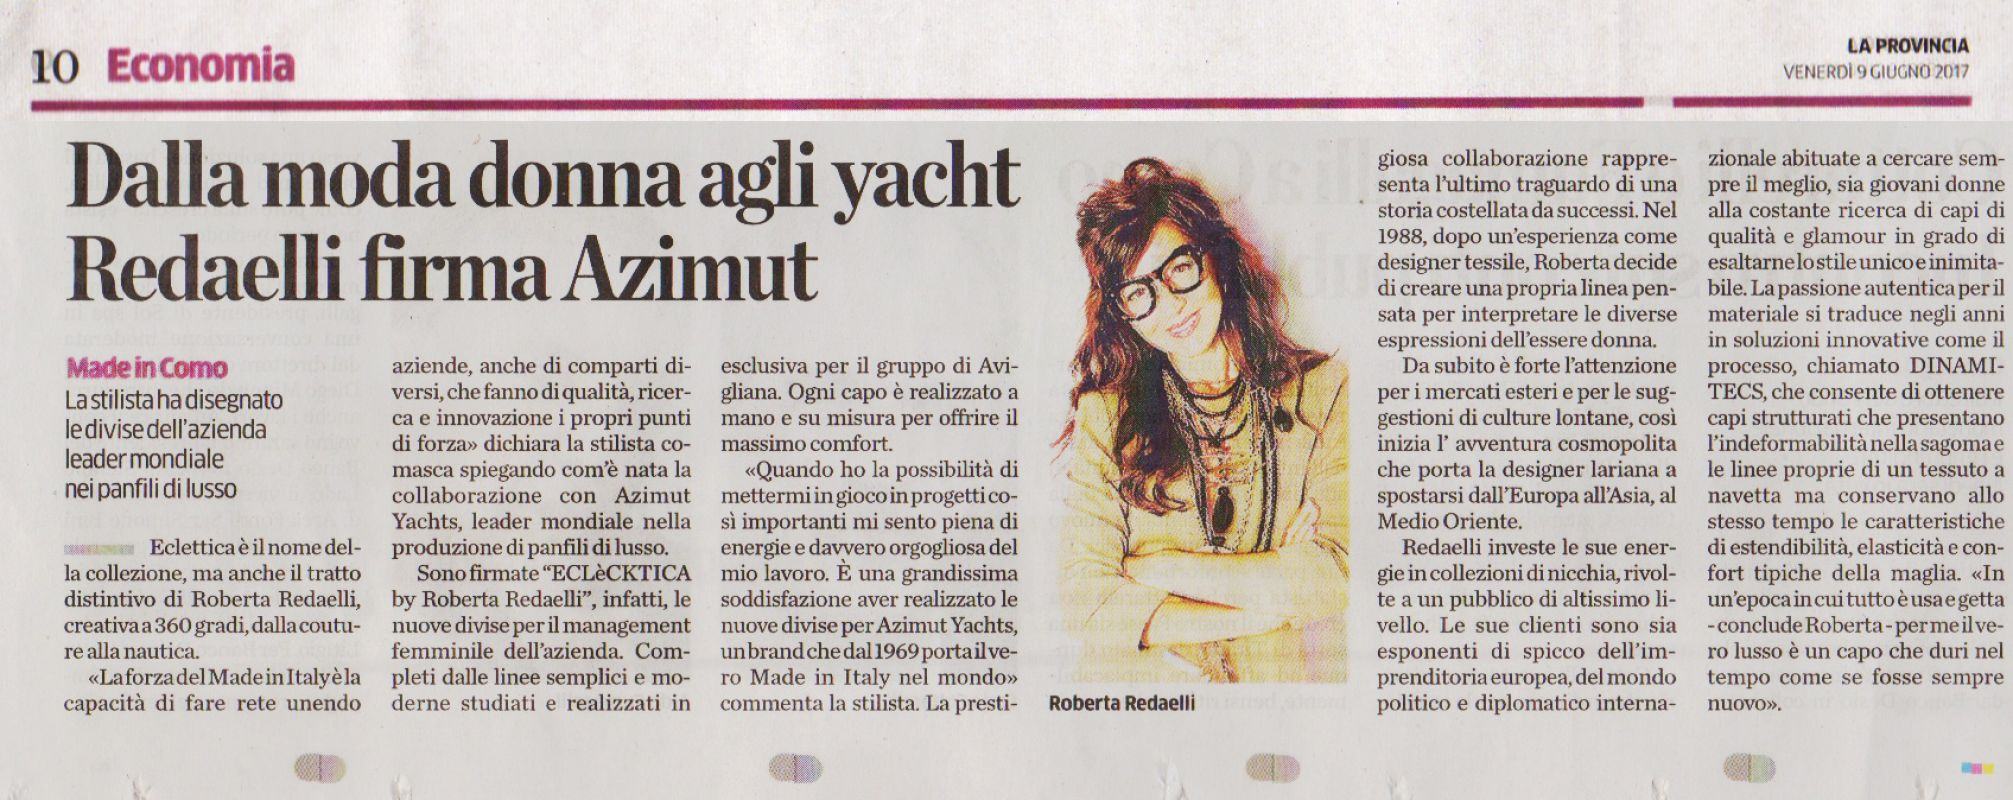 La Provincia di Como 9th June 2017 Roberta Redaelli for Azimut Yachts